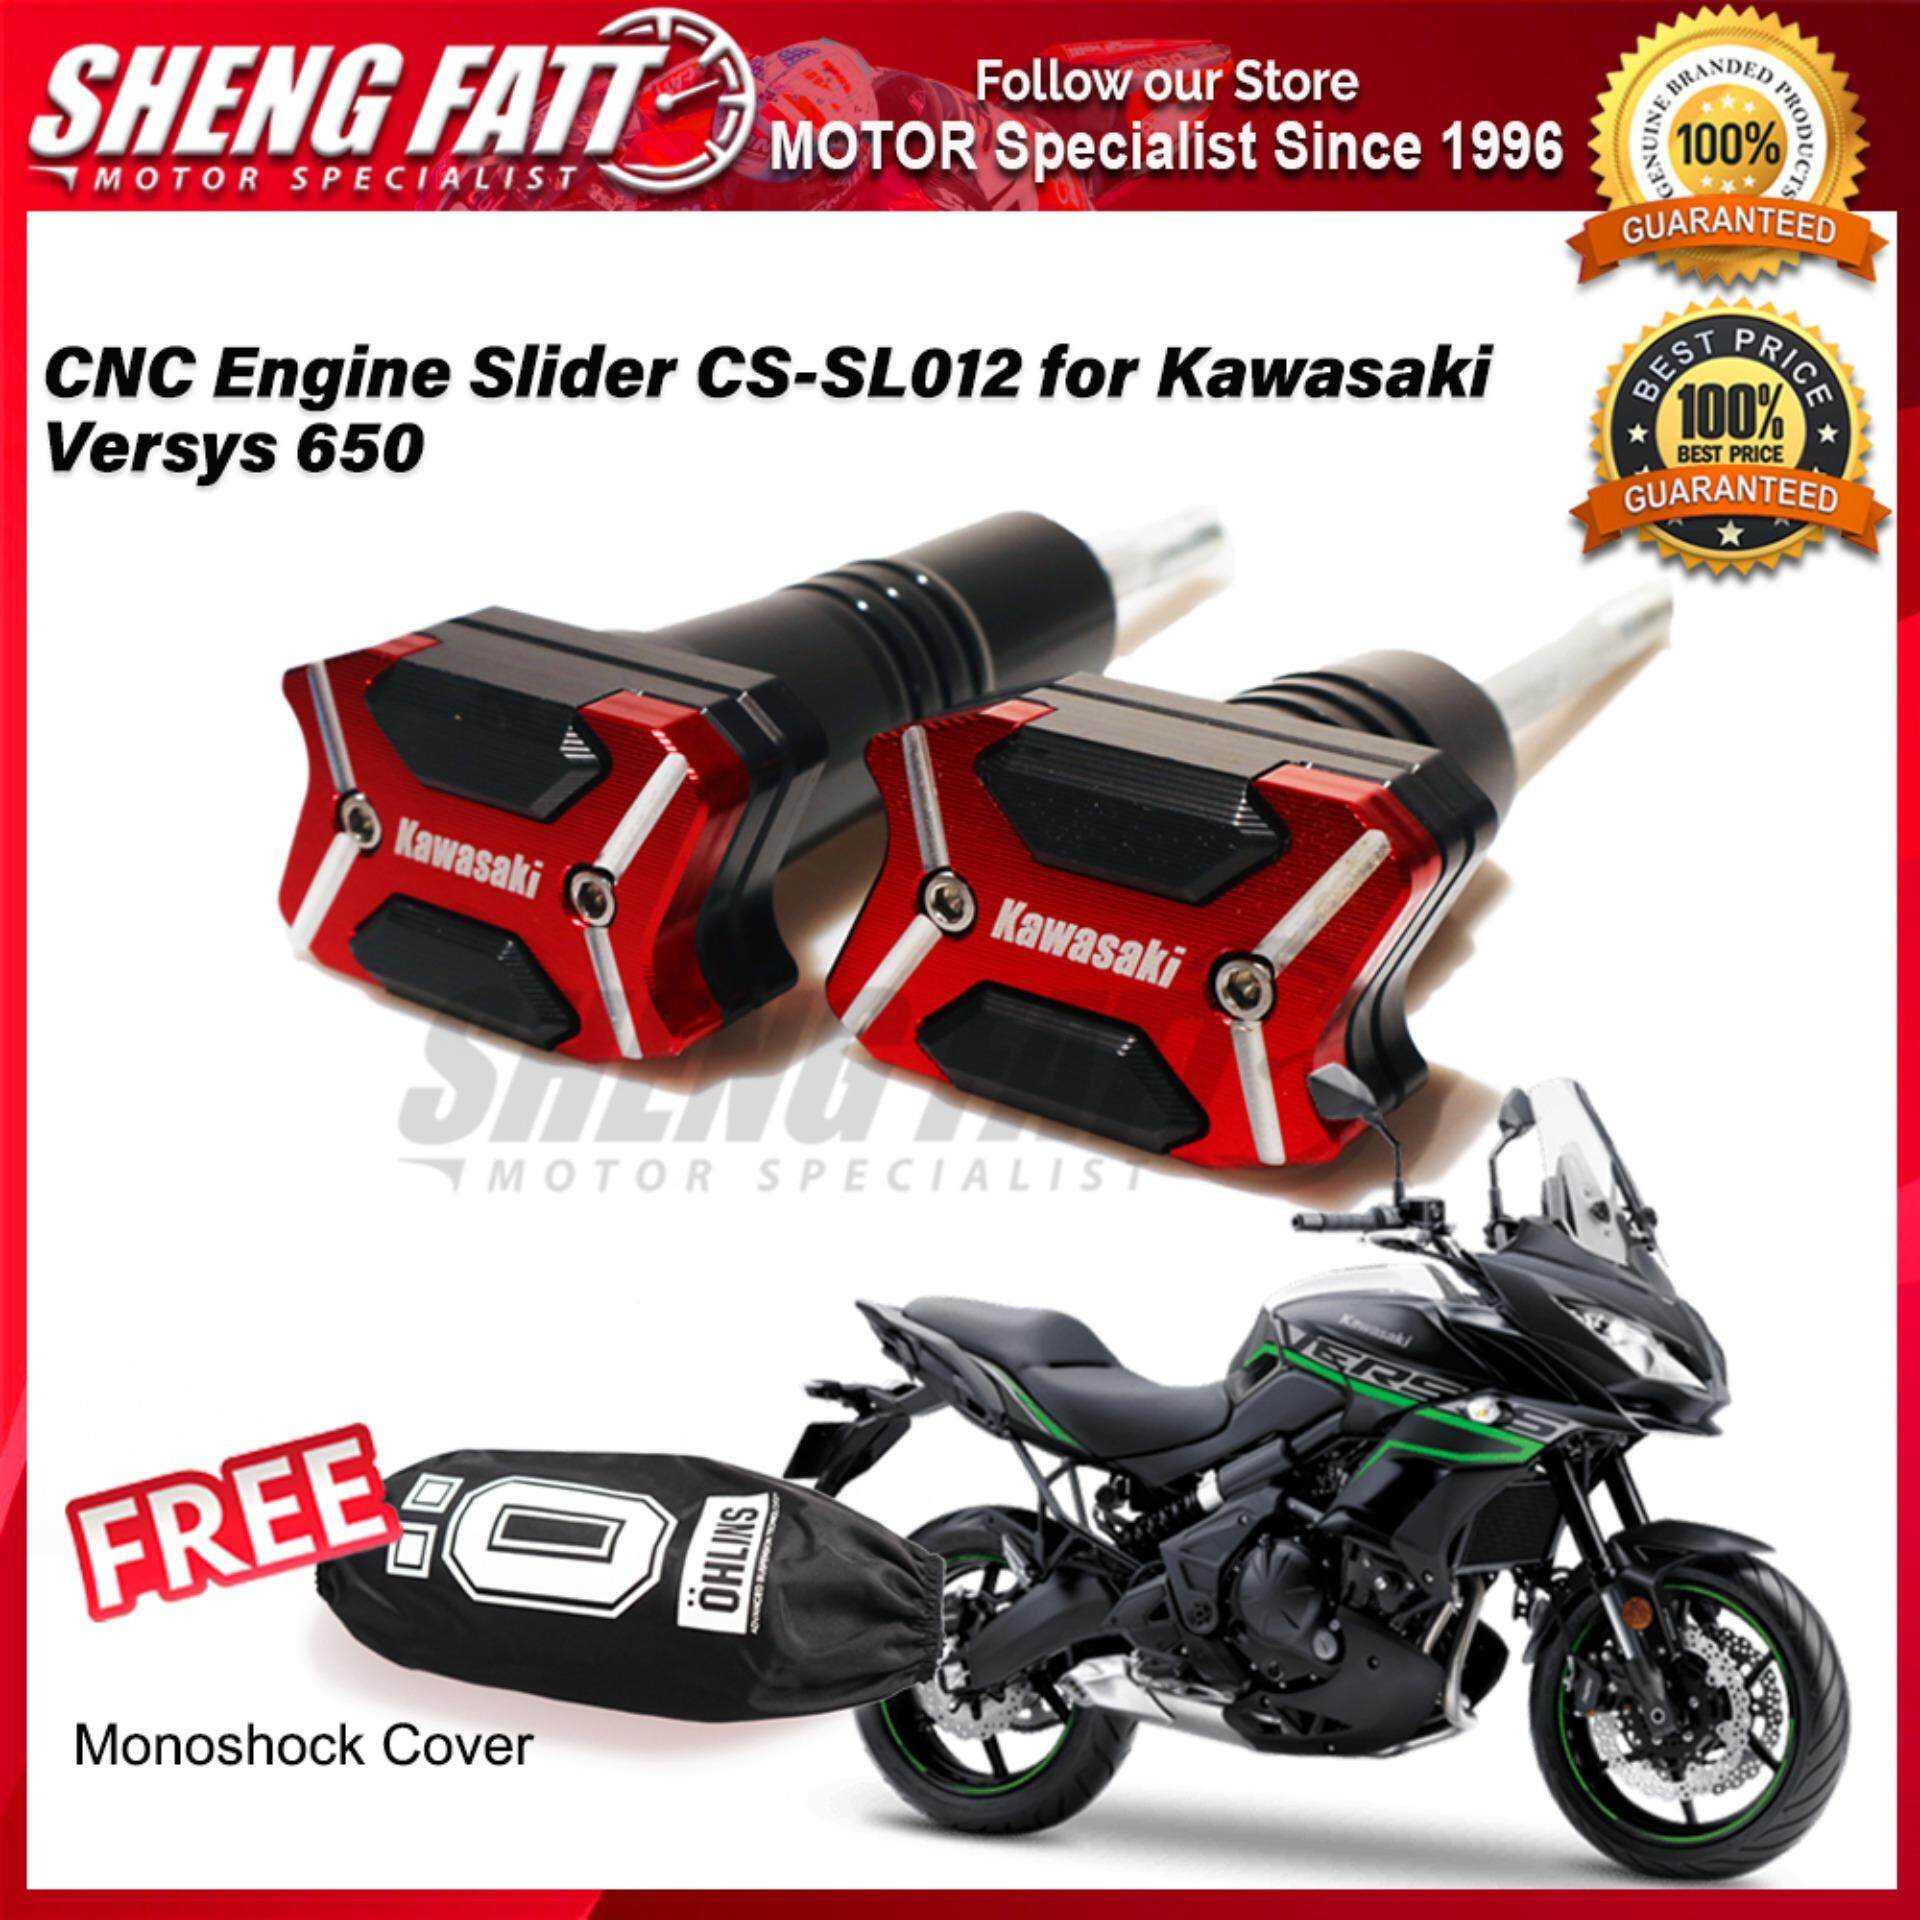 CNC Engine Slider CS-SL012 for Kawasaki Versys 650 FREE Mono Shock Monoshock Cover